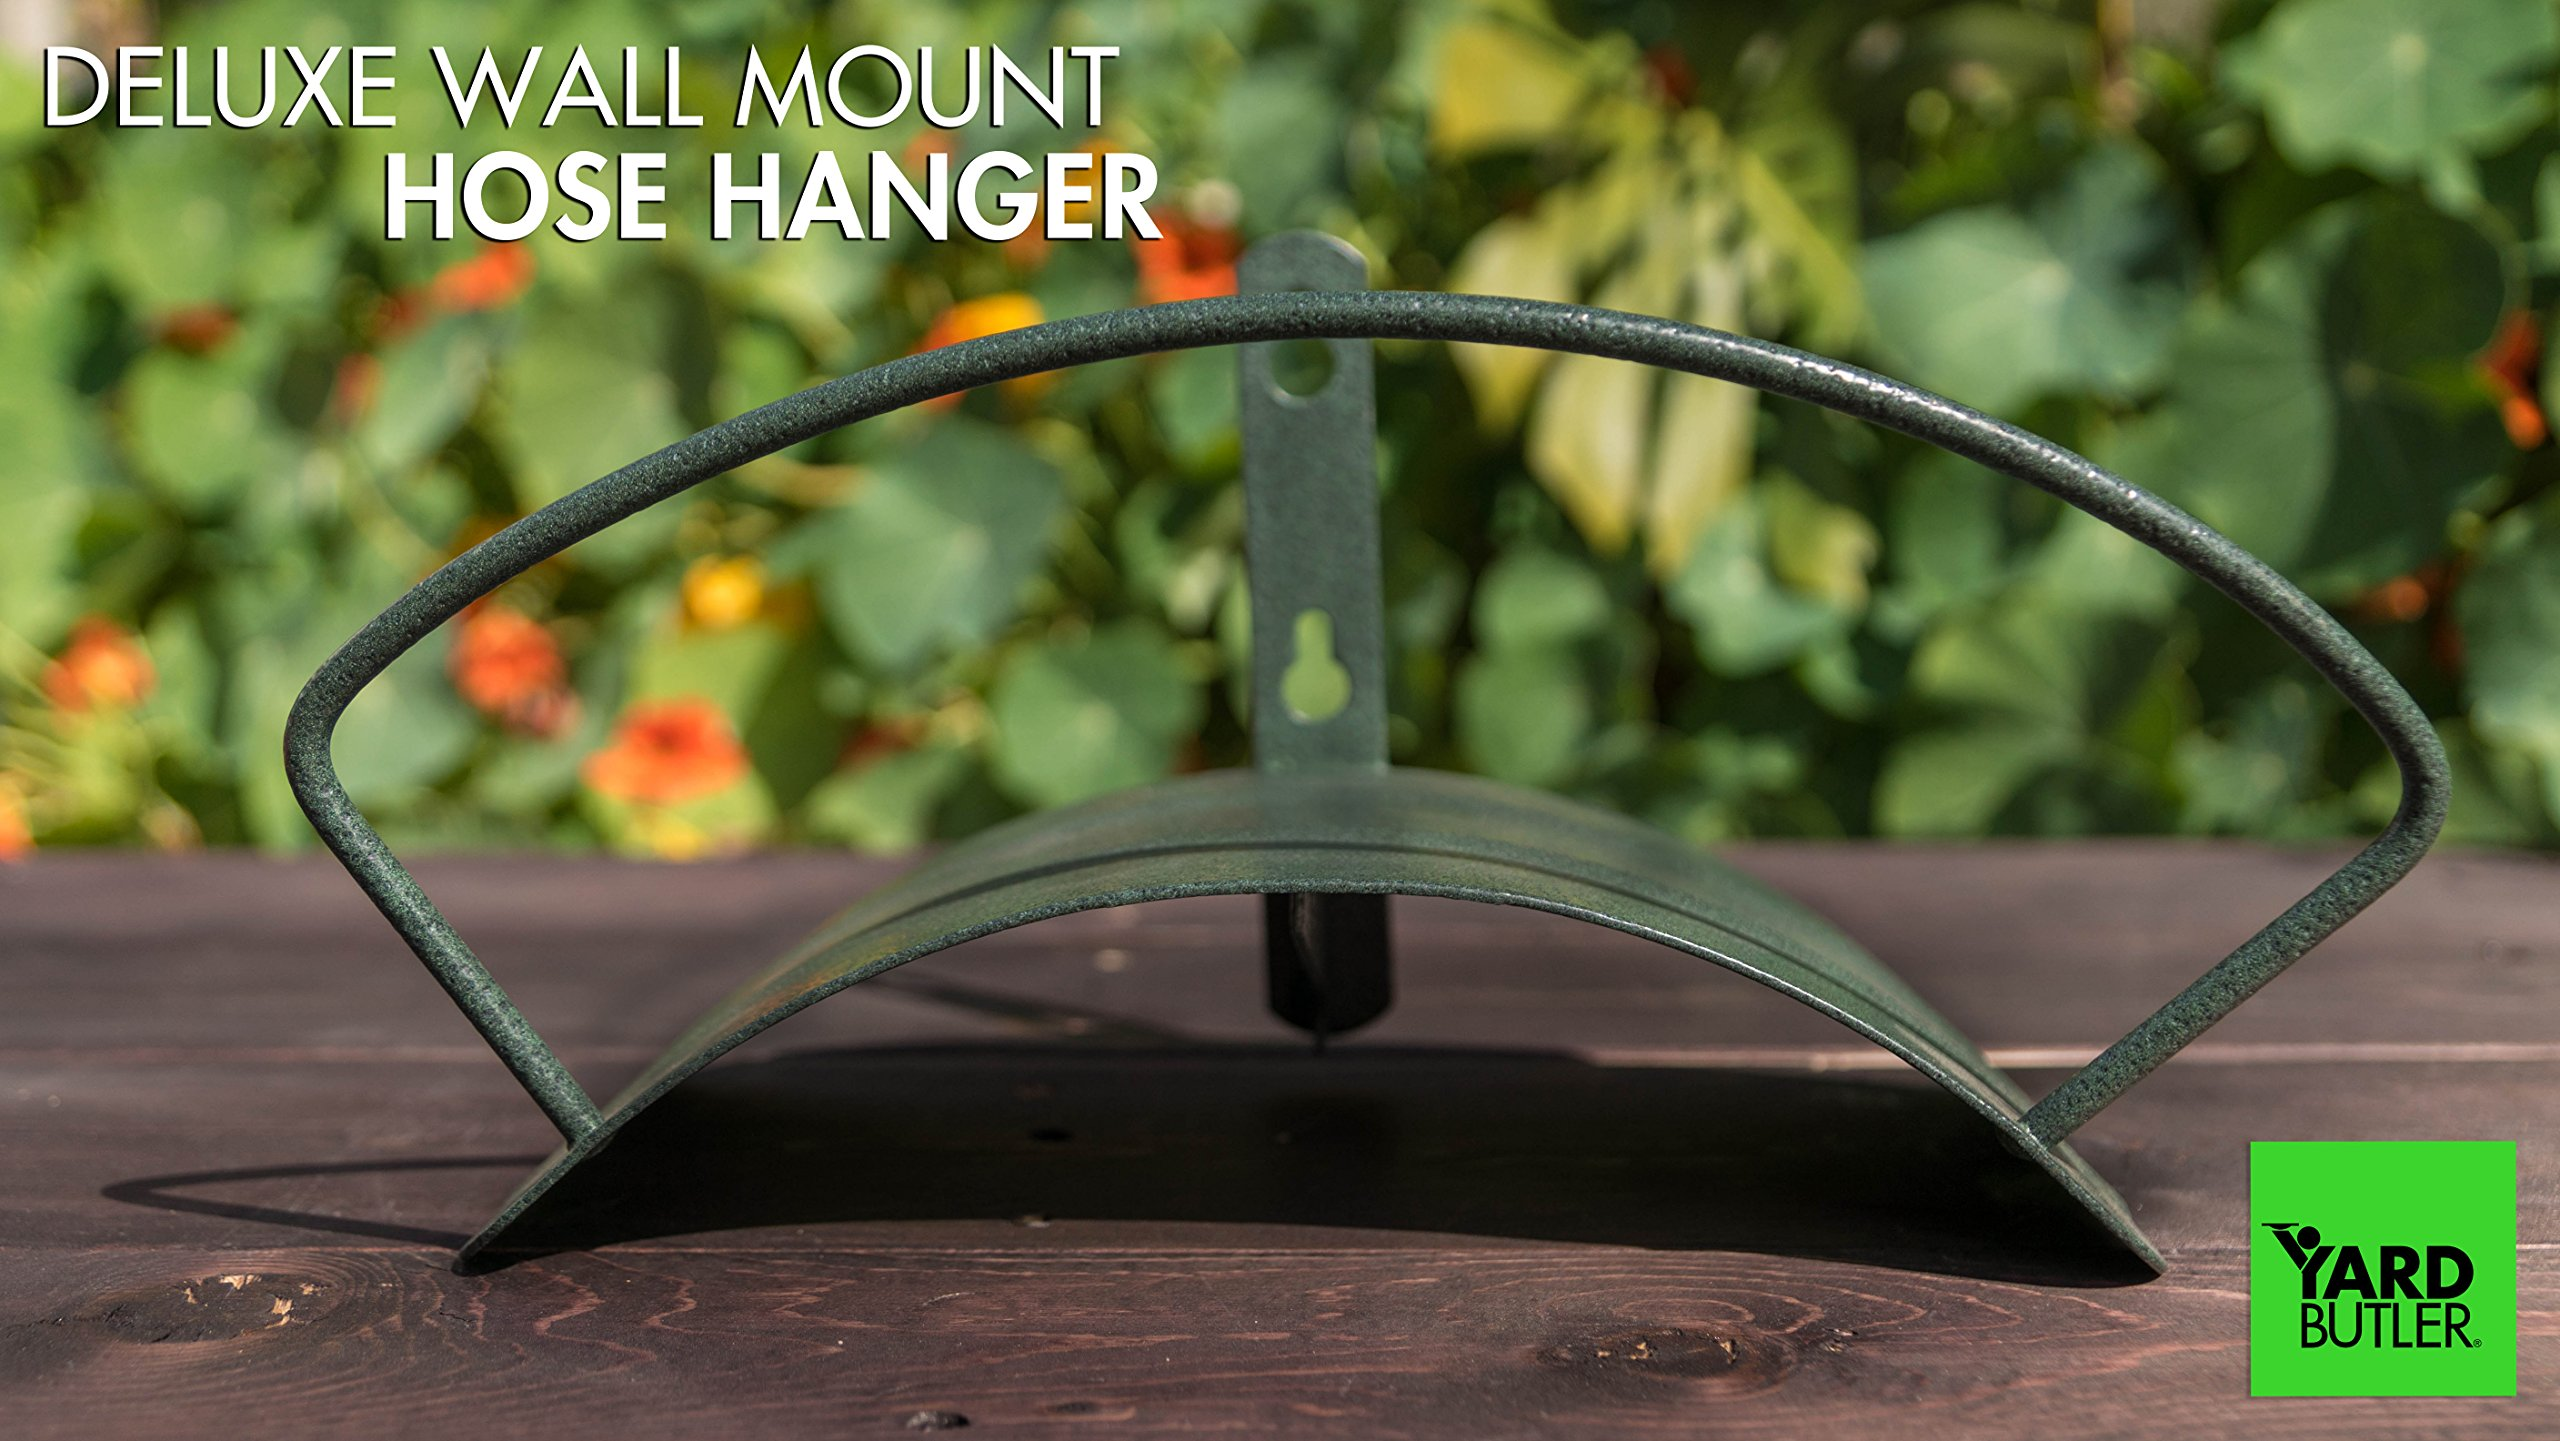 Yard Butler Deluxe Heavy Duty Wall Mount Hose Hanger Easily Holds 100' Of 5/8' Hose Solid Steel Extra Bracing And Patented Design In and DECORATIVE DESIGNS IHCWM-1 Textured Forest Green by Yard Butler (Image #5)